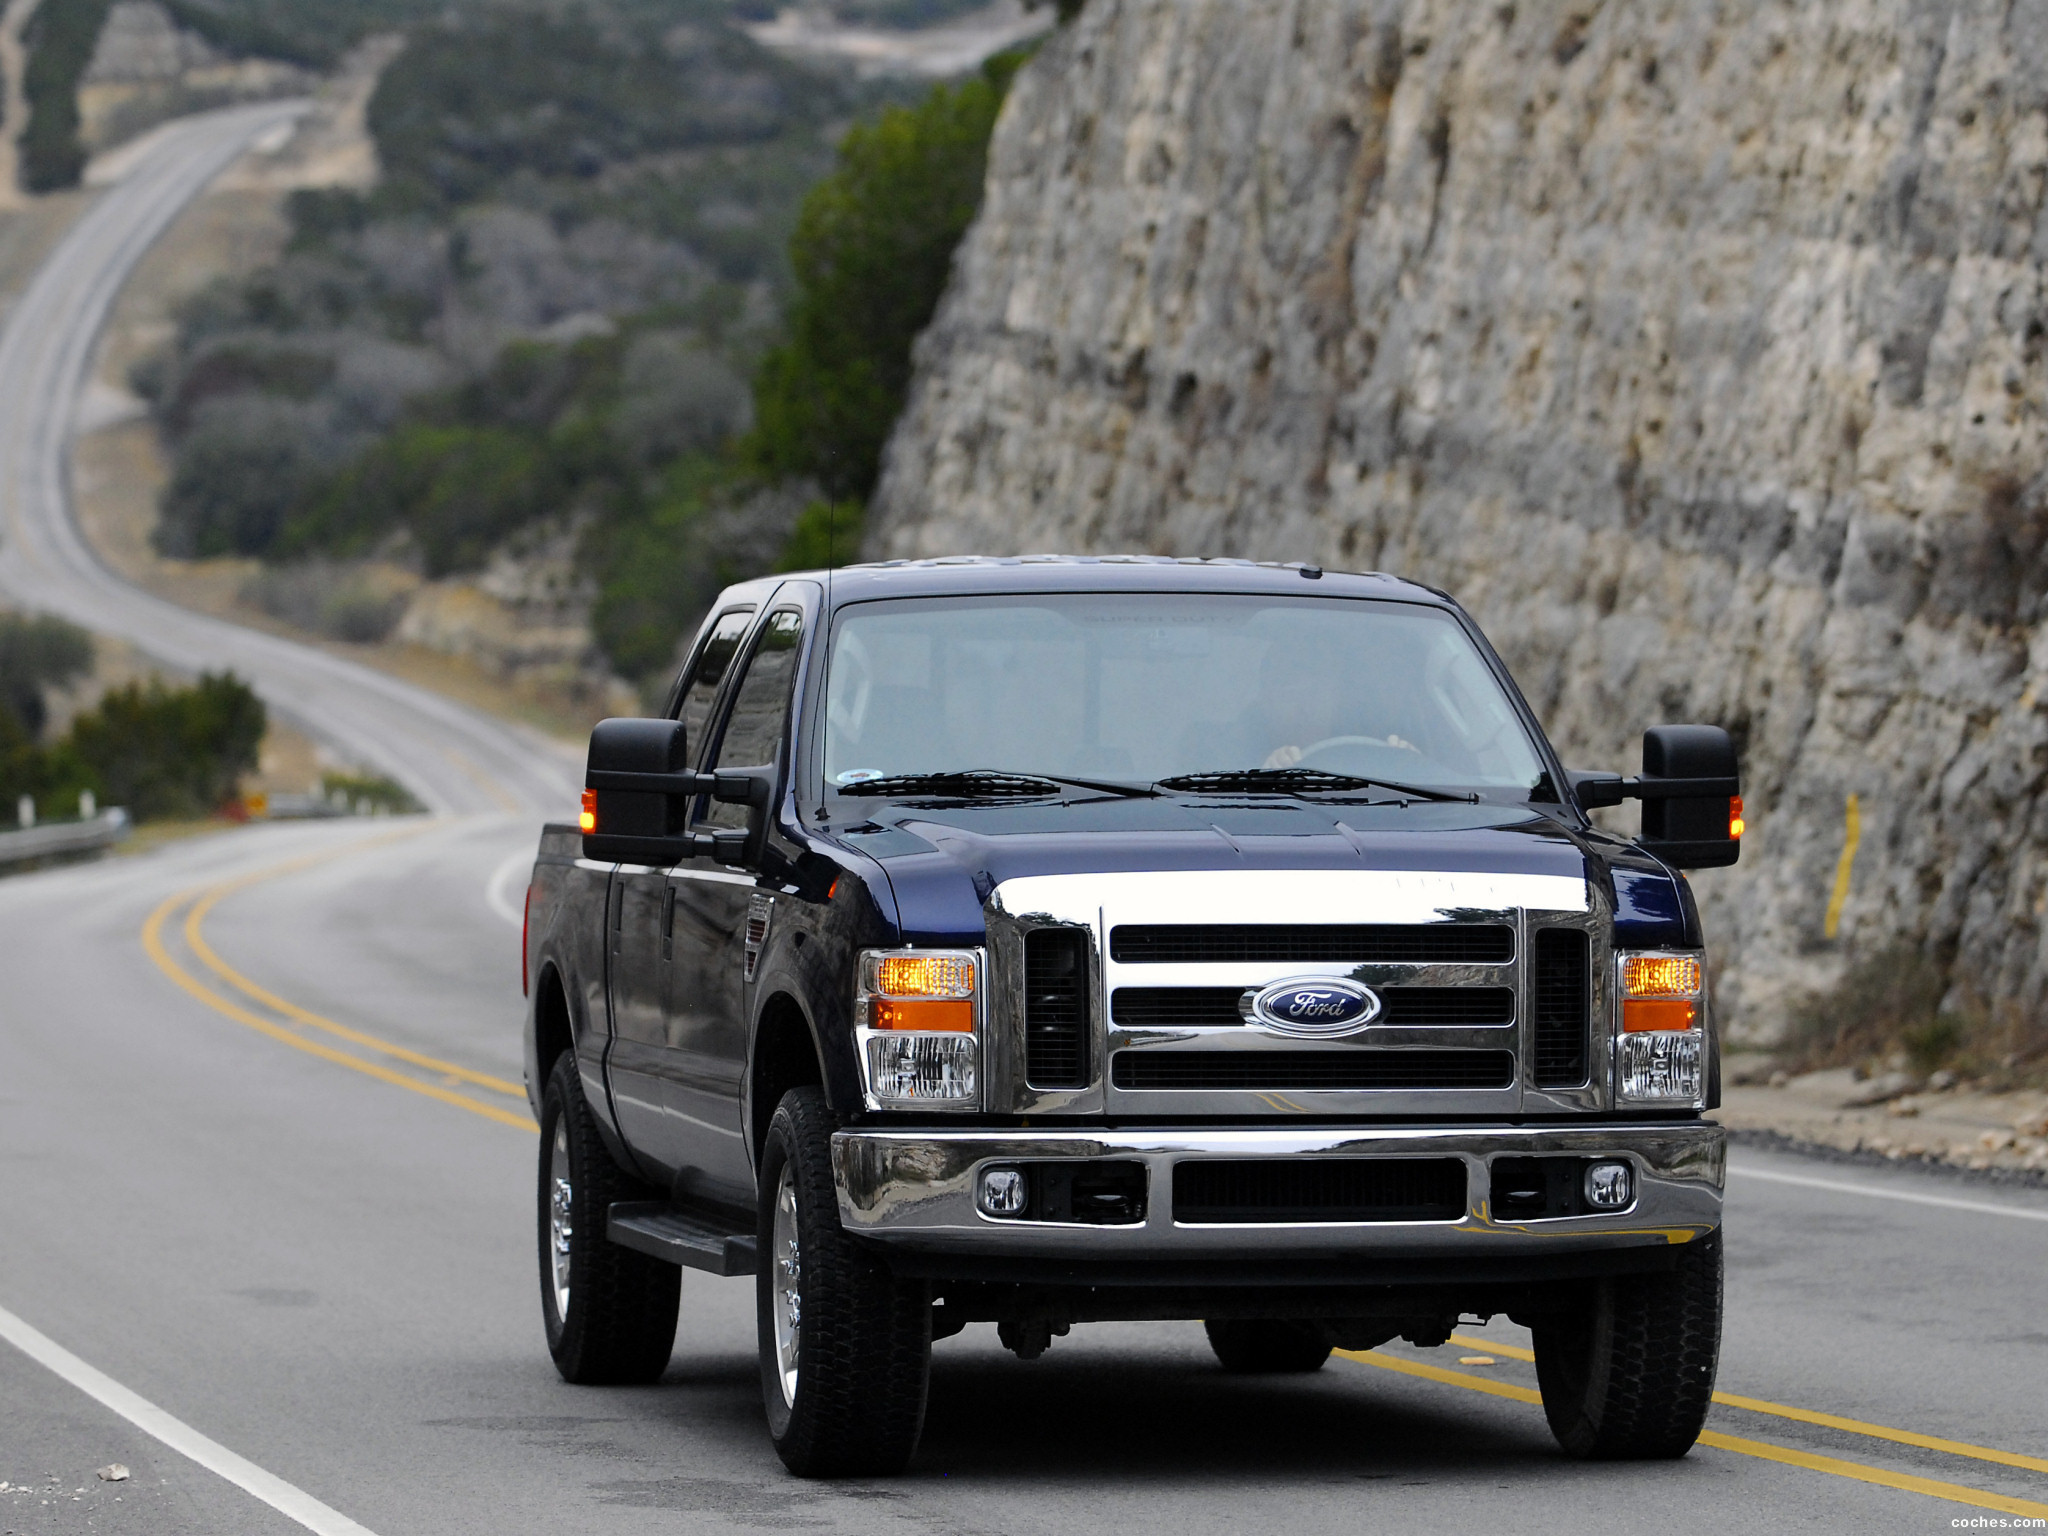 Foto 0 de Ford F-250 Super Duty Crew Cab 2008